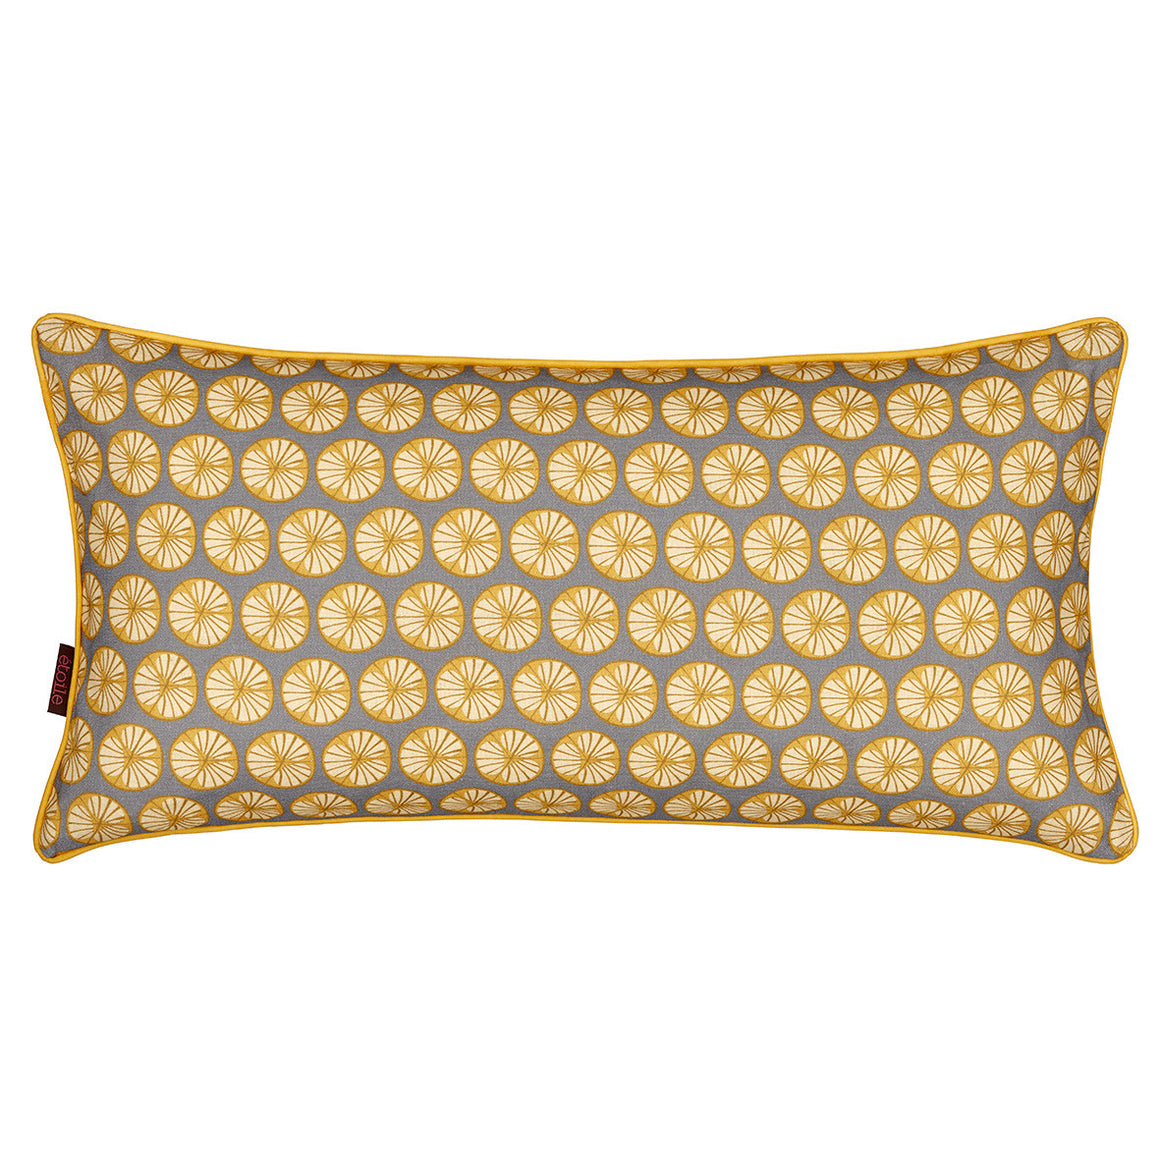 Graphic Fruit Cross Section Pattern Linen Union Printed Cushion in Light Dove Grey and Saffron Yellow